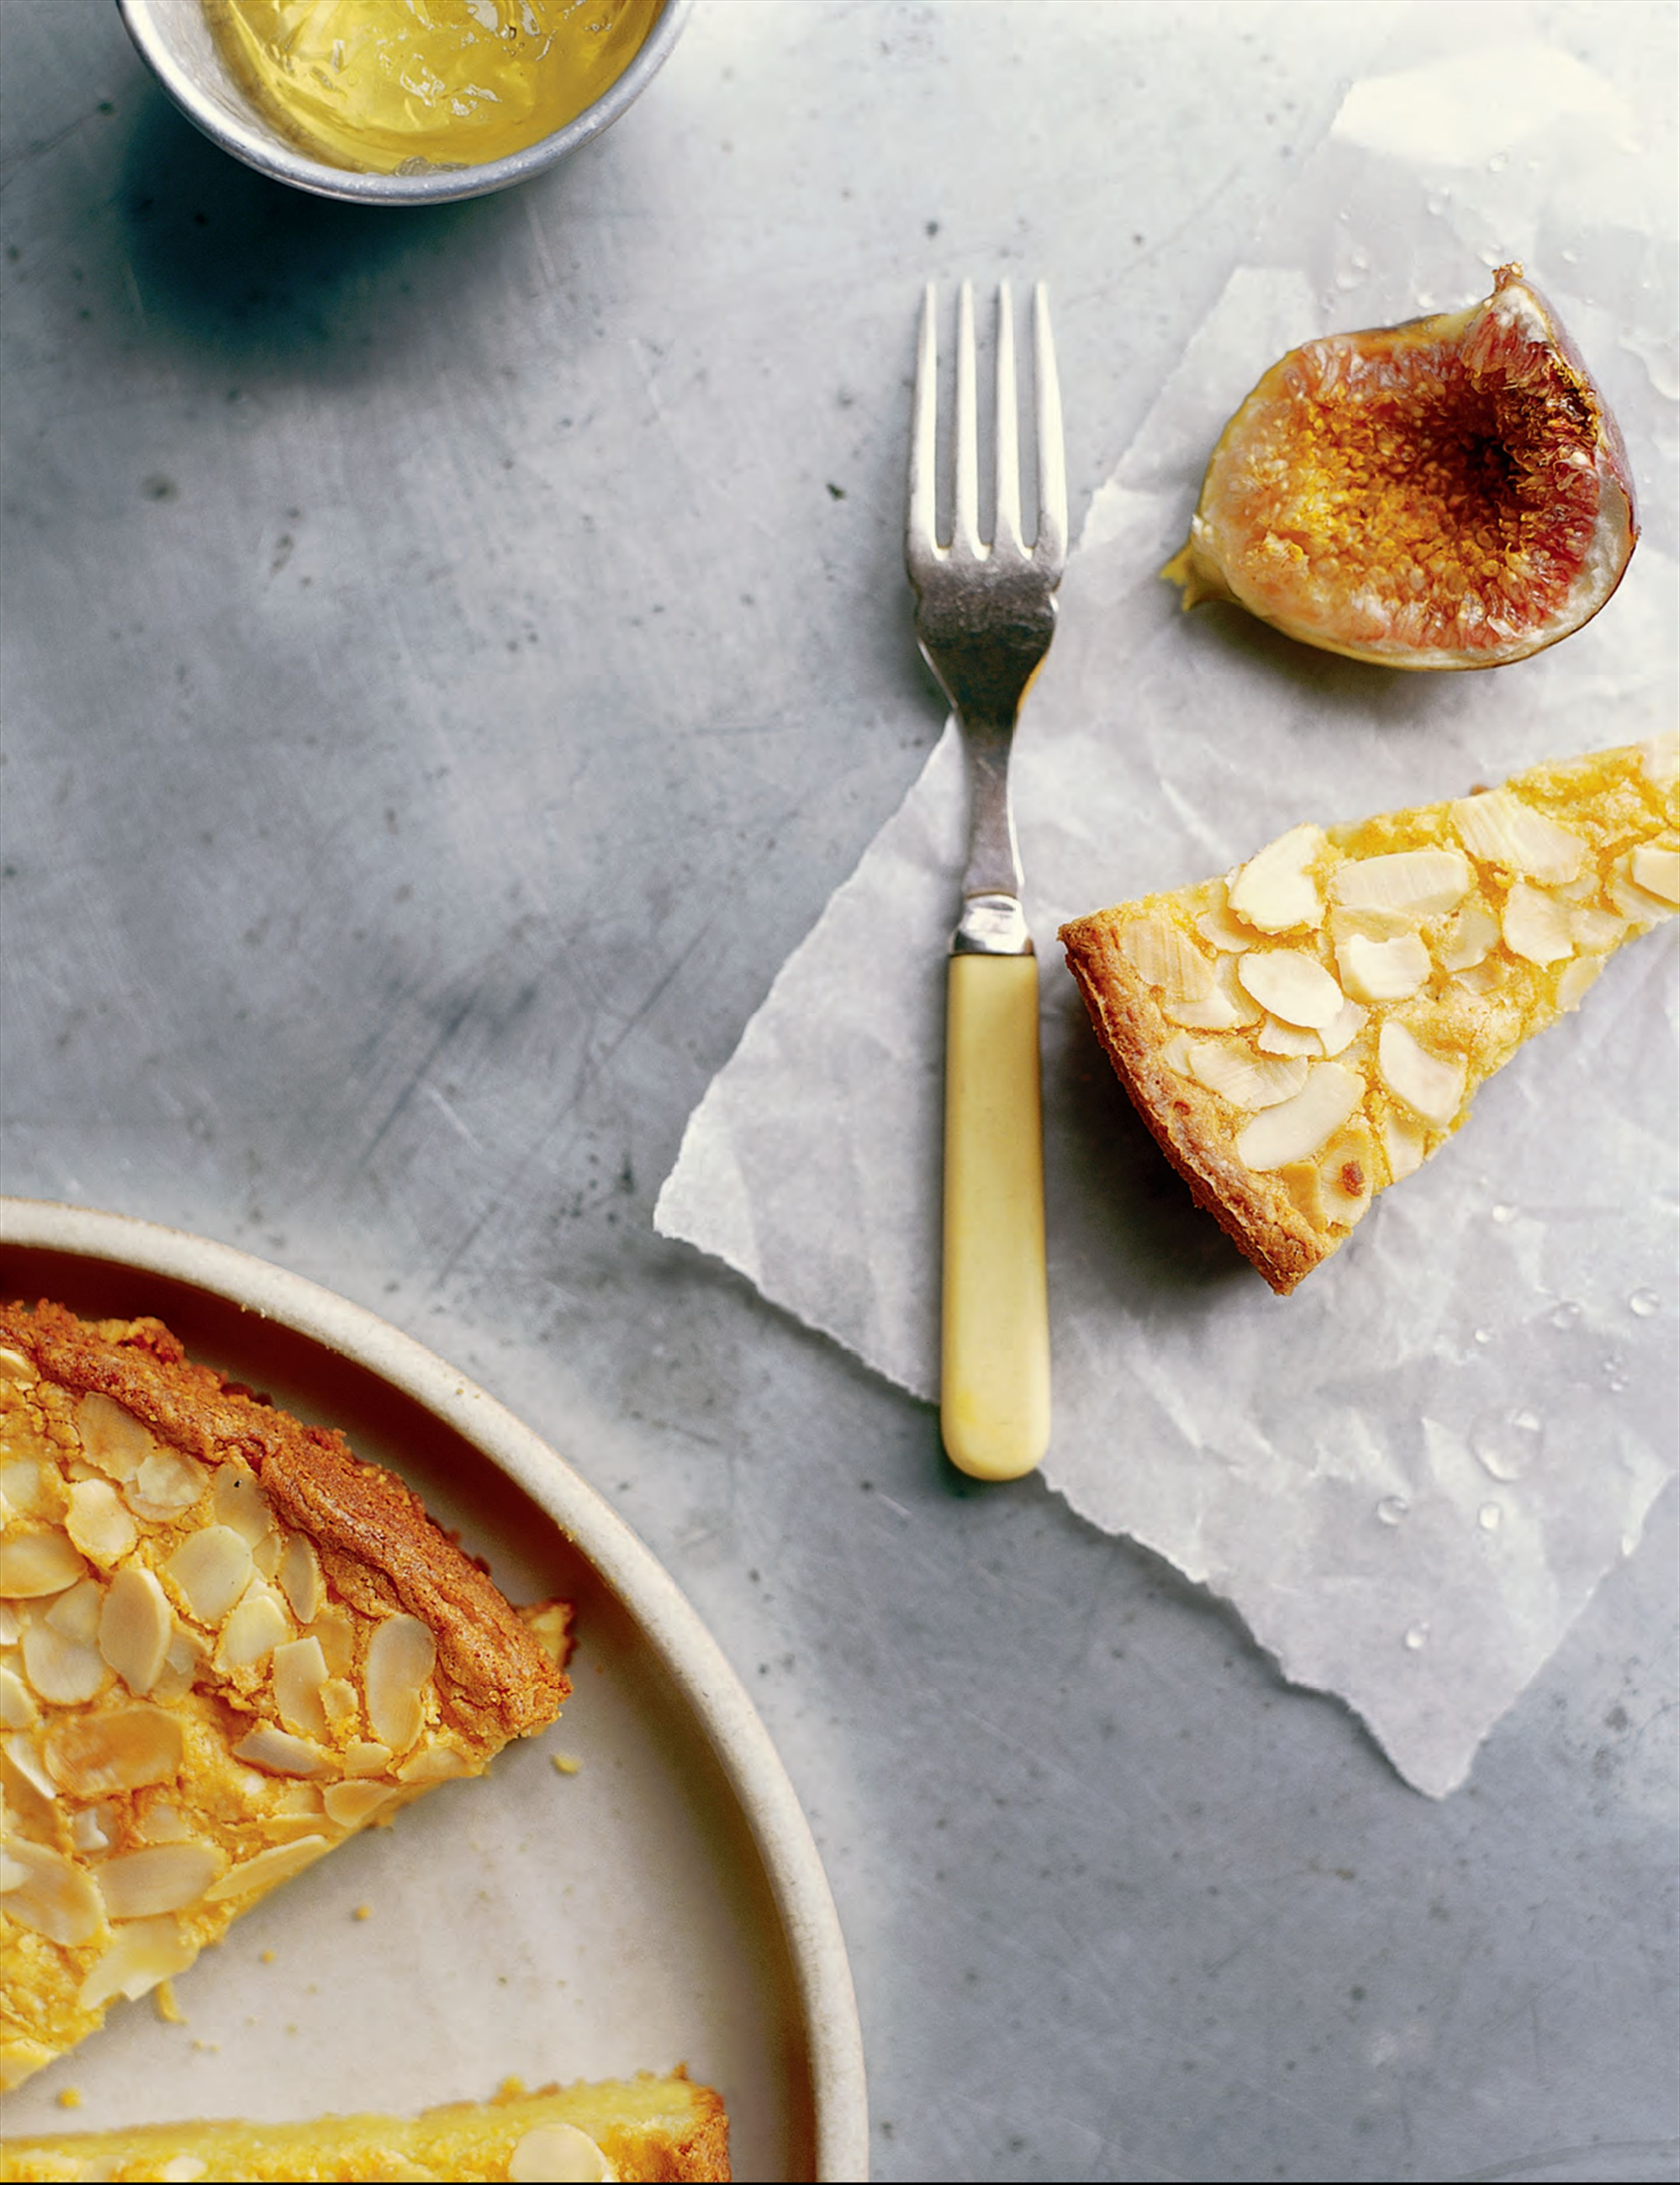 Almond cake with moscato jelly and amaretto figs